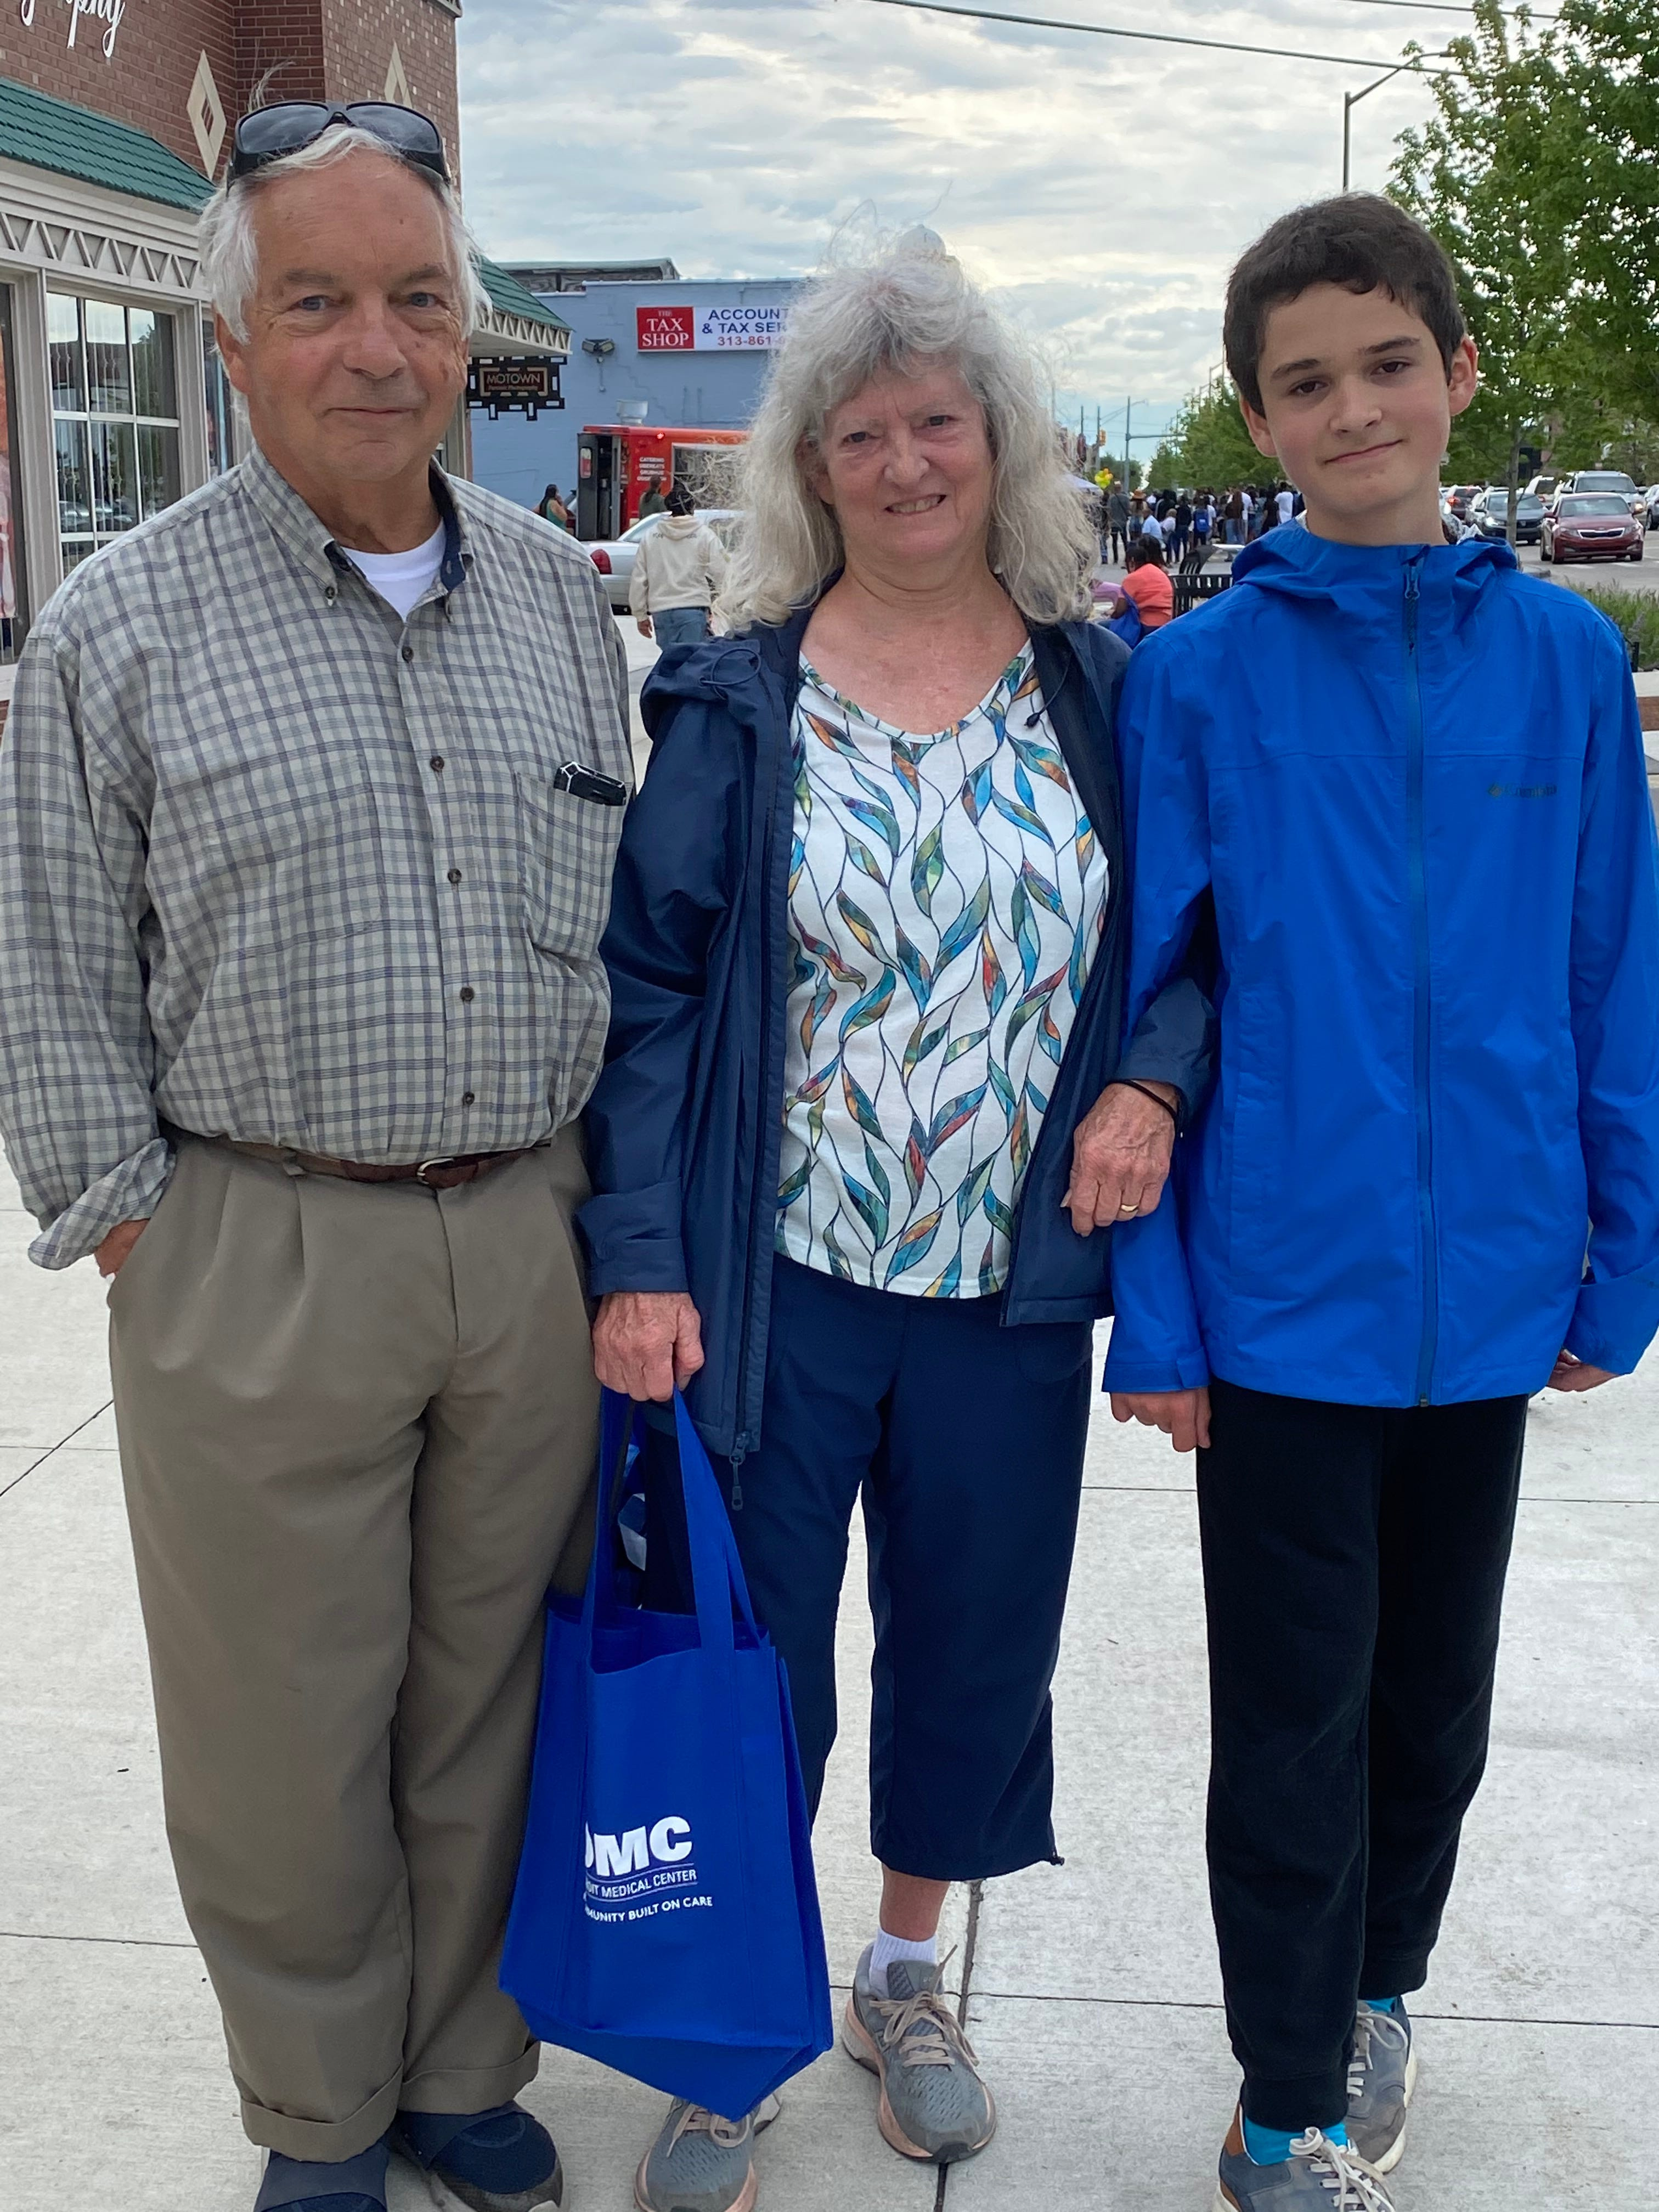 Larry Krupa, 78, Lynn Krupa, 74, and Zen Duran, 14, all pose on the Avenue of Fashion after shopping before catching their flight back home to Portland, OR.